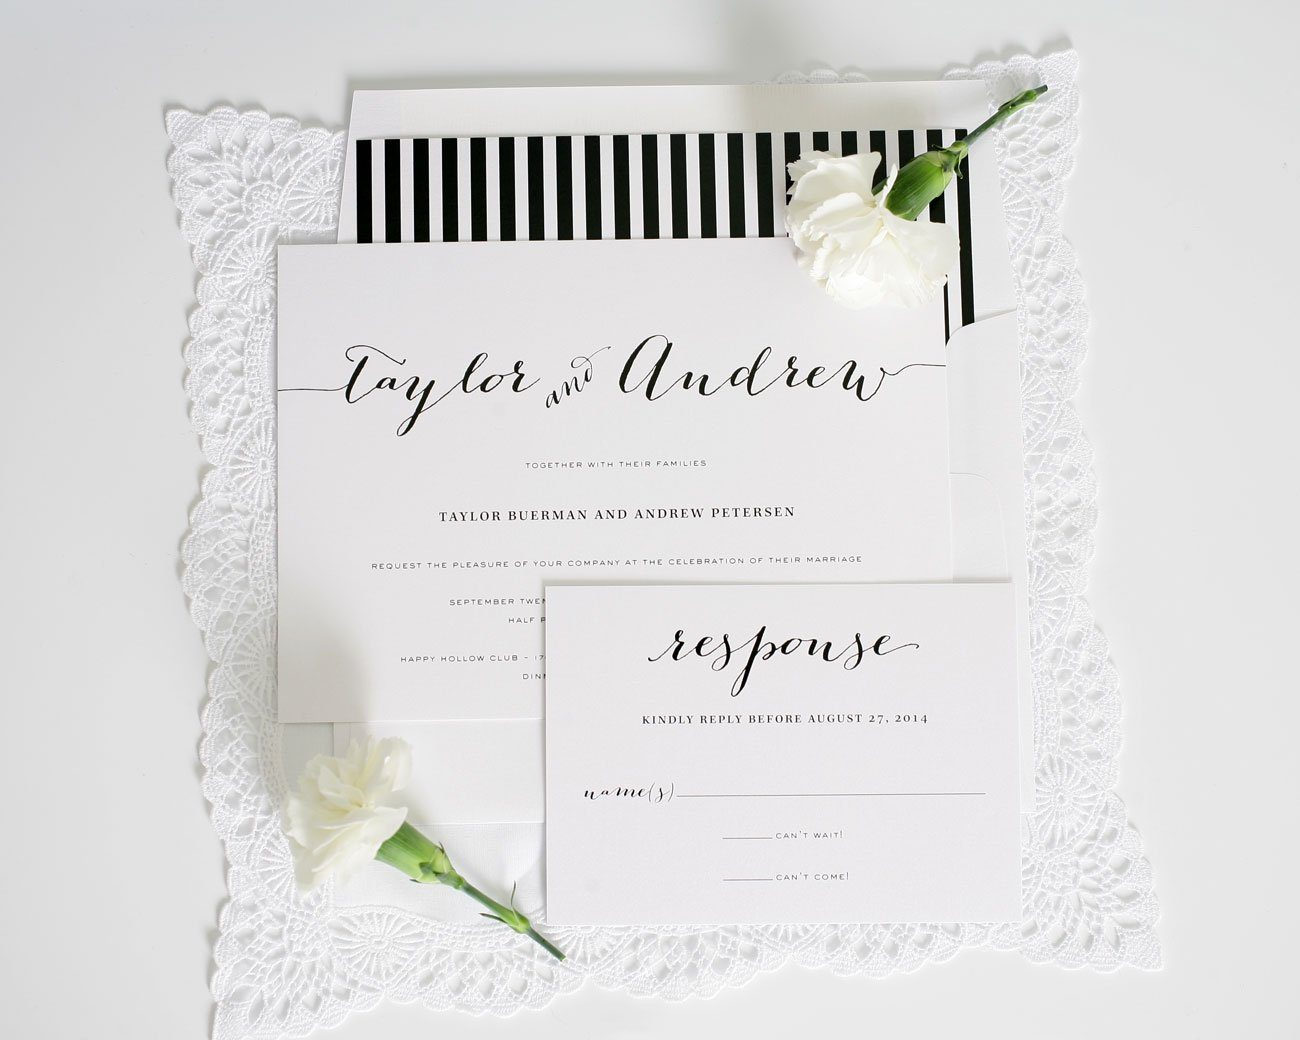 Whimsical Black and White Striped wedding invitations